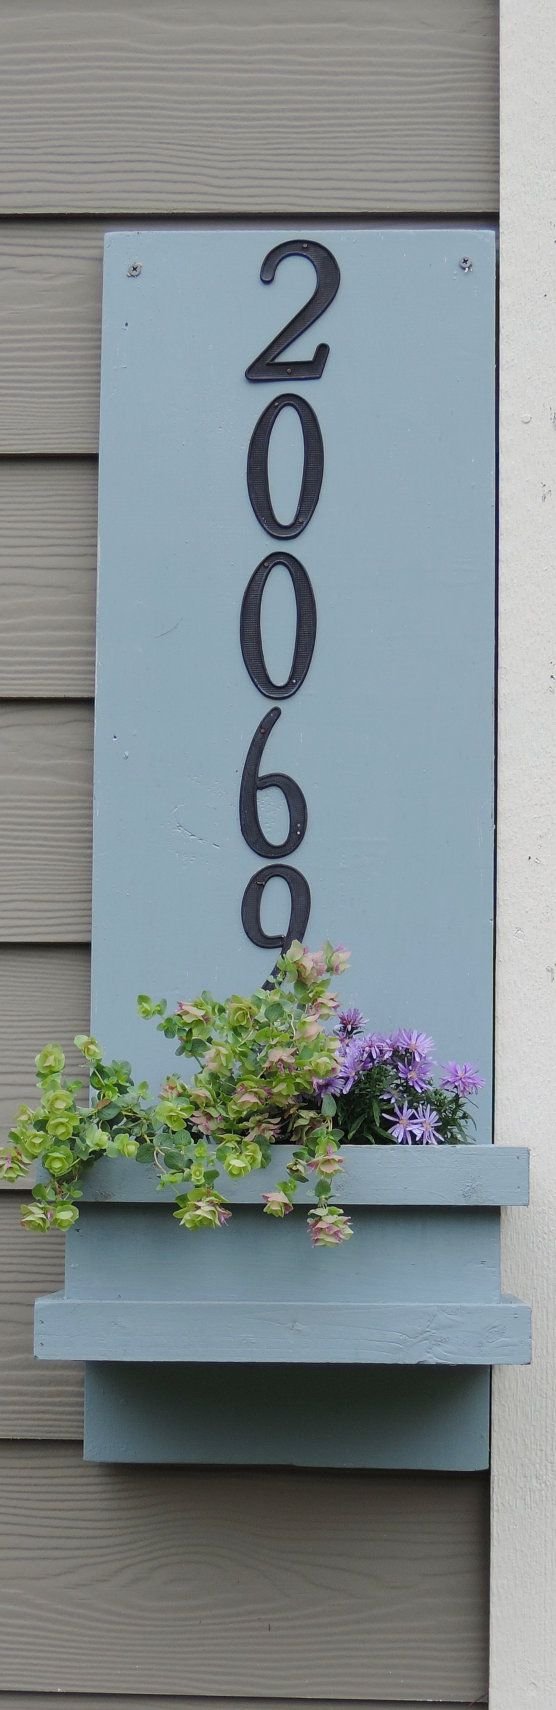 10 best House Numbers images on Pinterest | House number plates ...